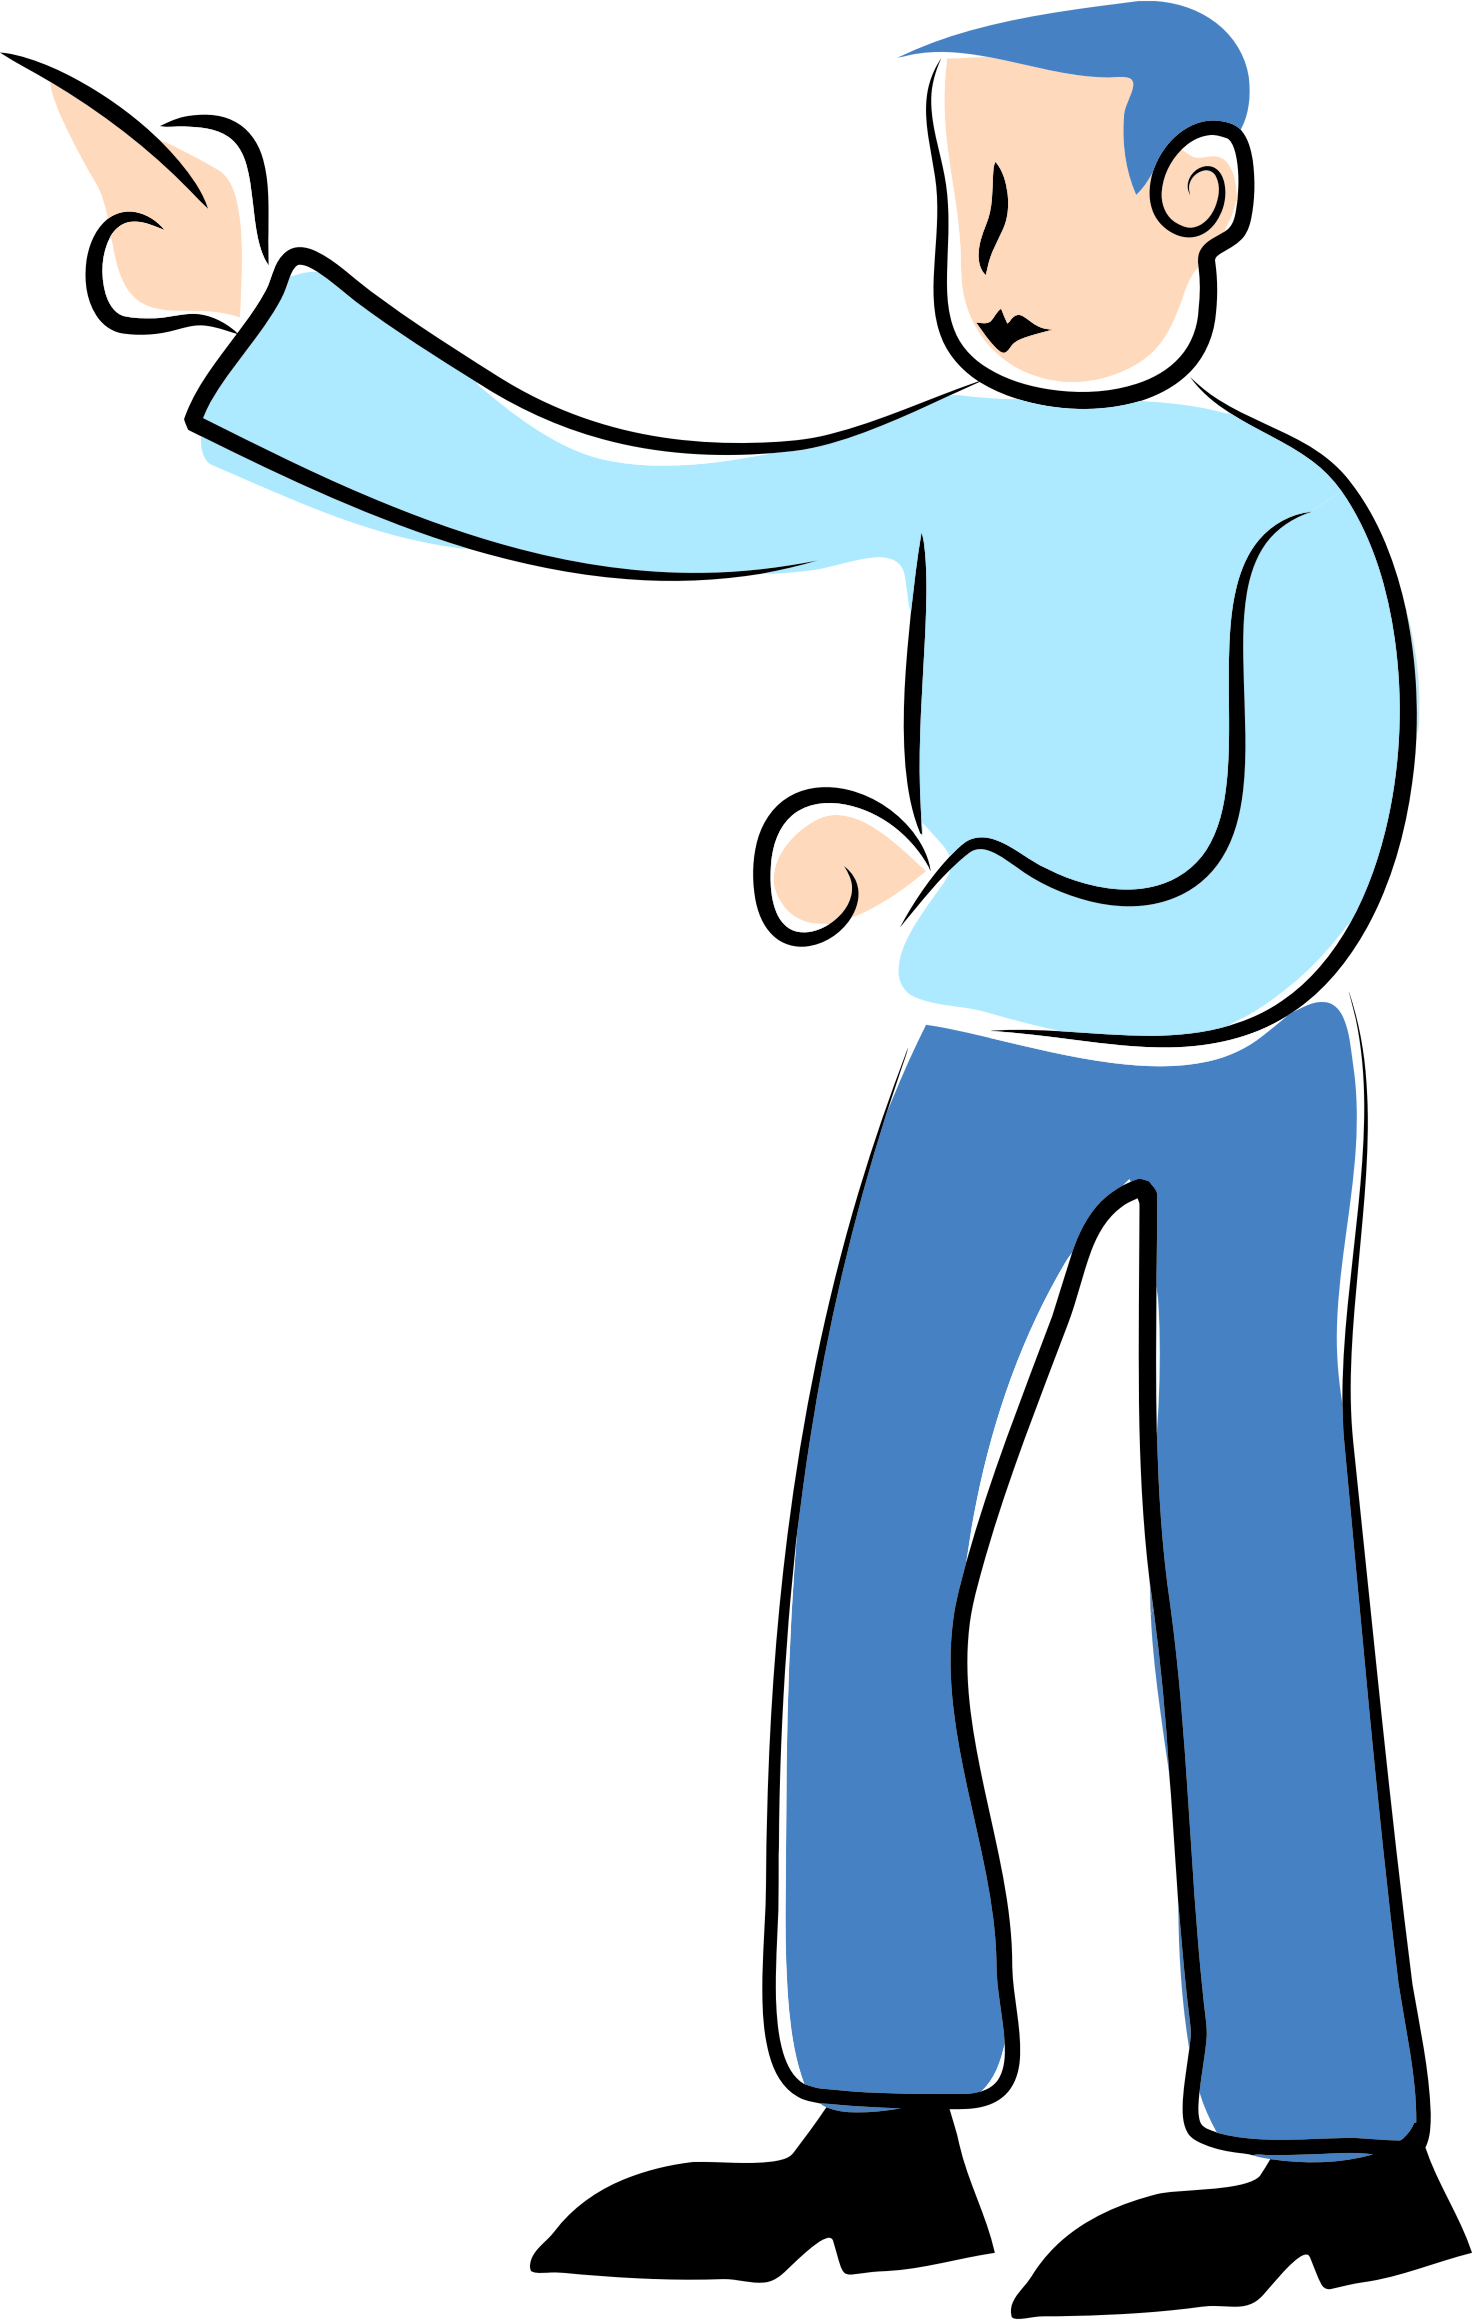 clipart man pointing finger - photo #19